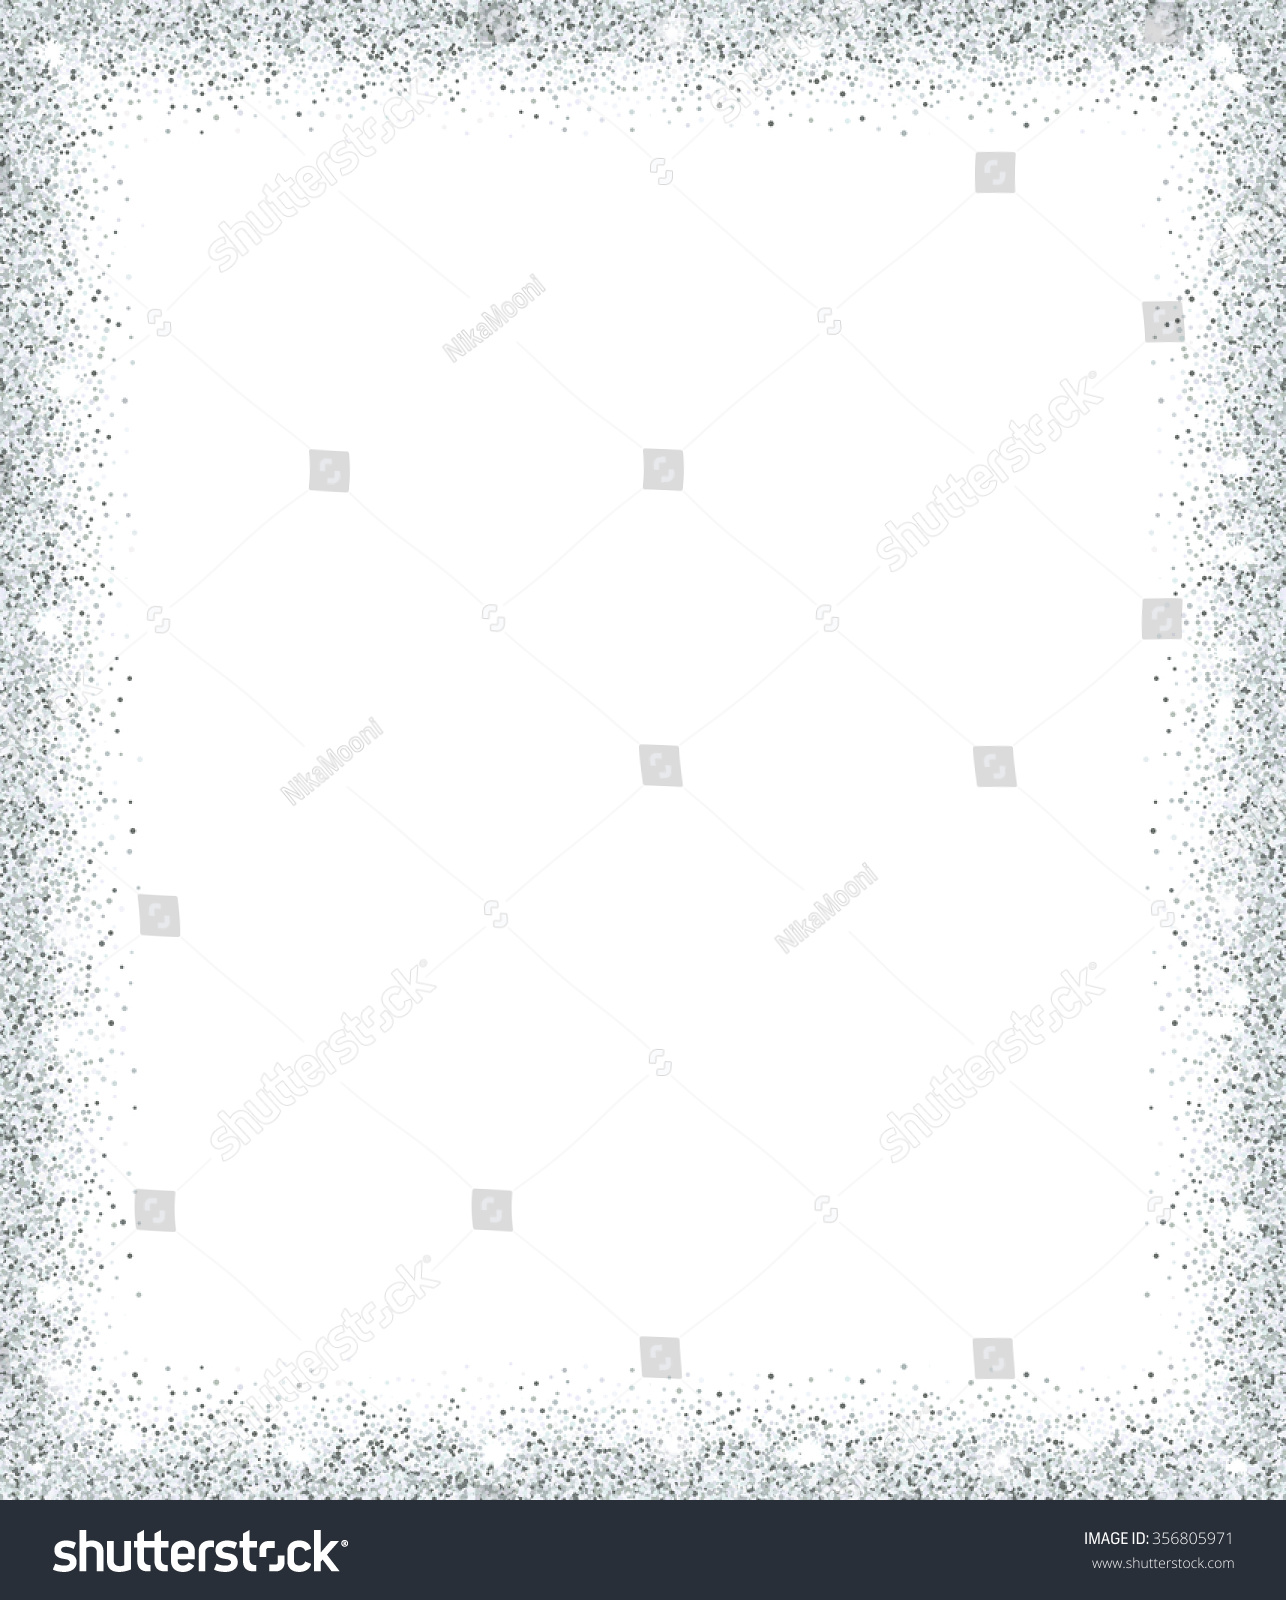 silver glitter background silver sparkle frame stock vector silver glitter background silver sparkle frame template for holiday designs invitation party